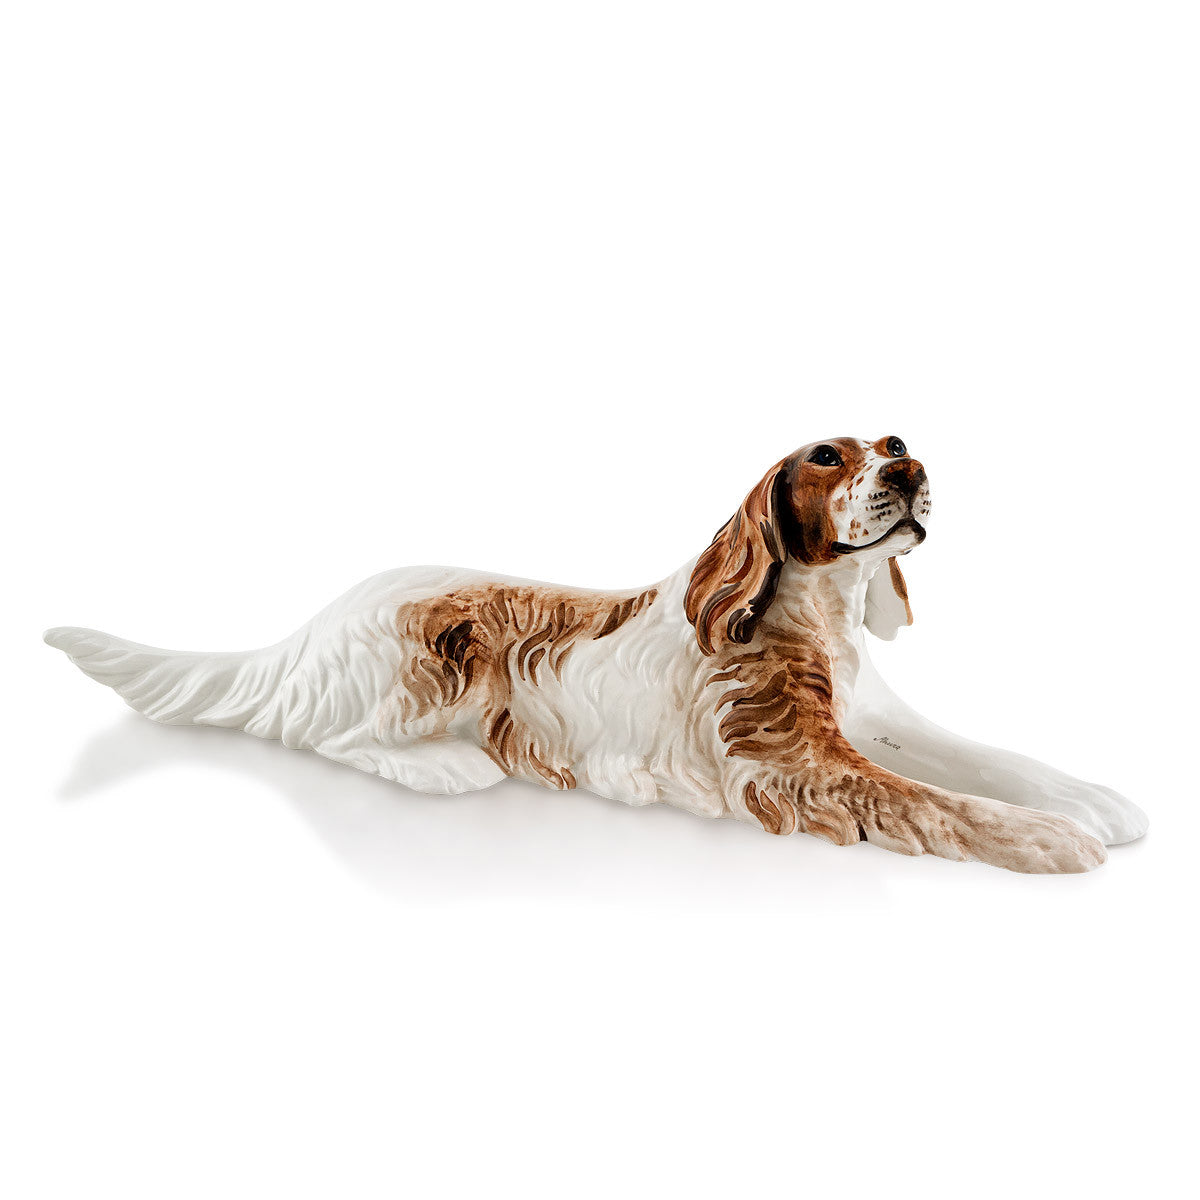 Ceramic english setter statue with lifelike details